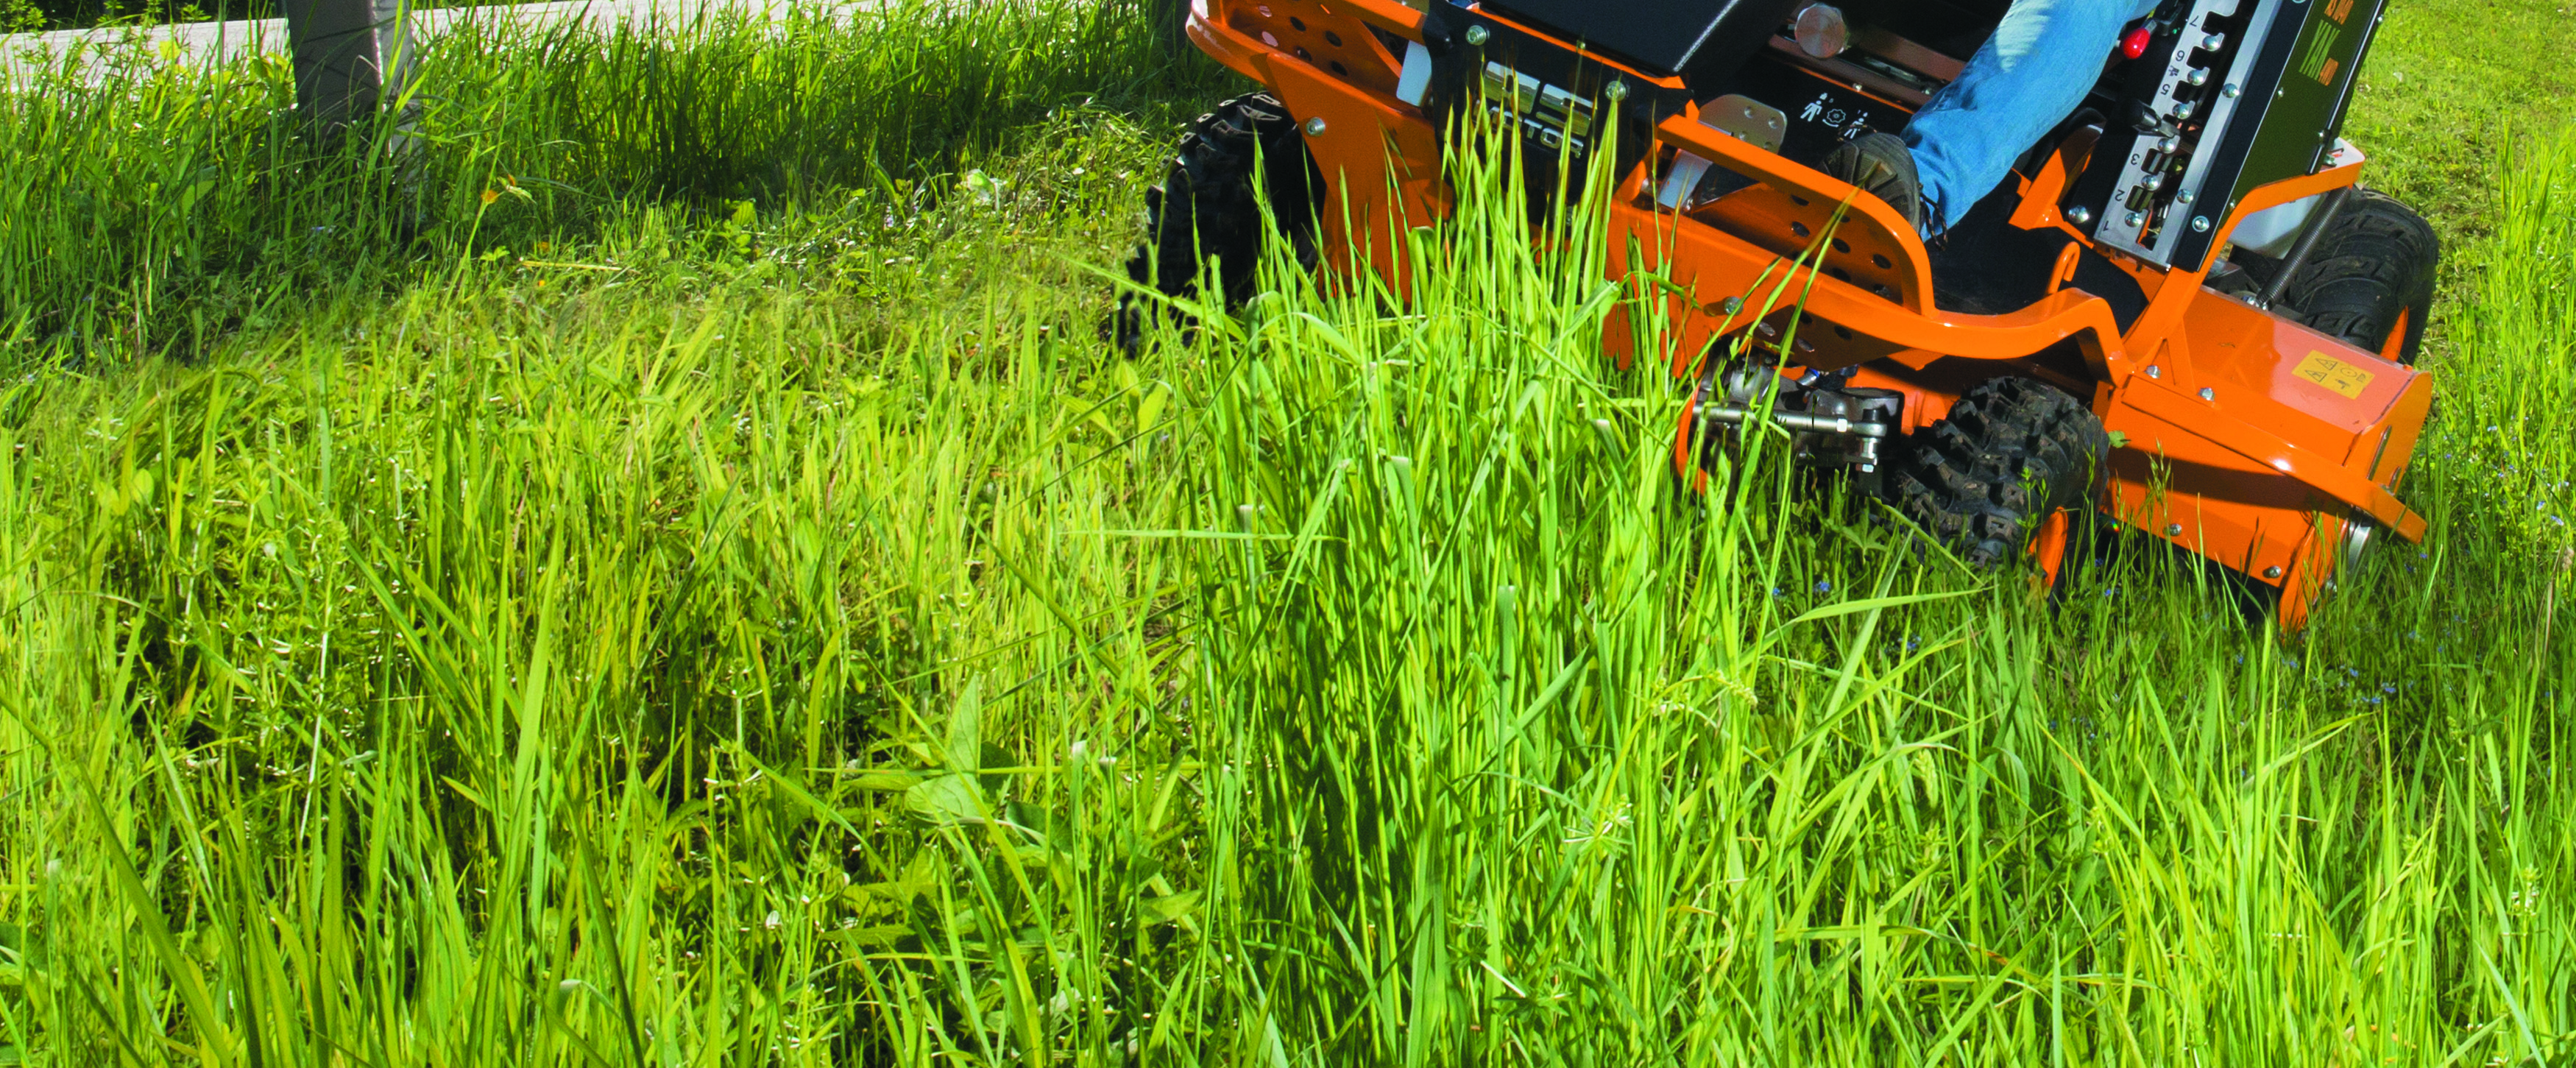 The Challenges of Long Grass Mowing